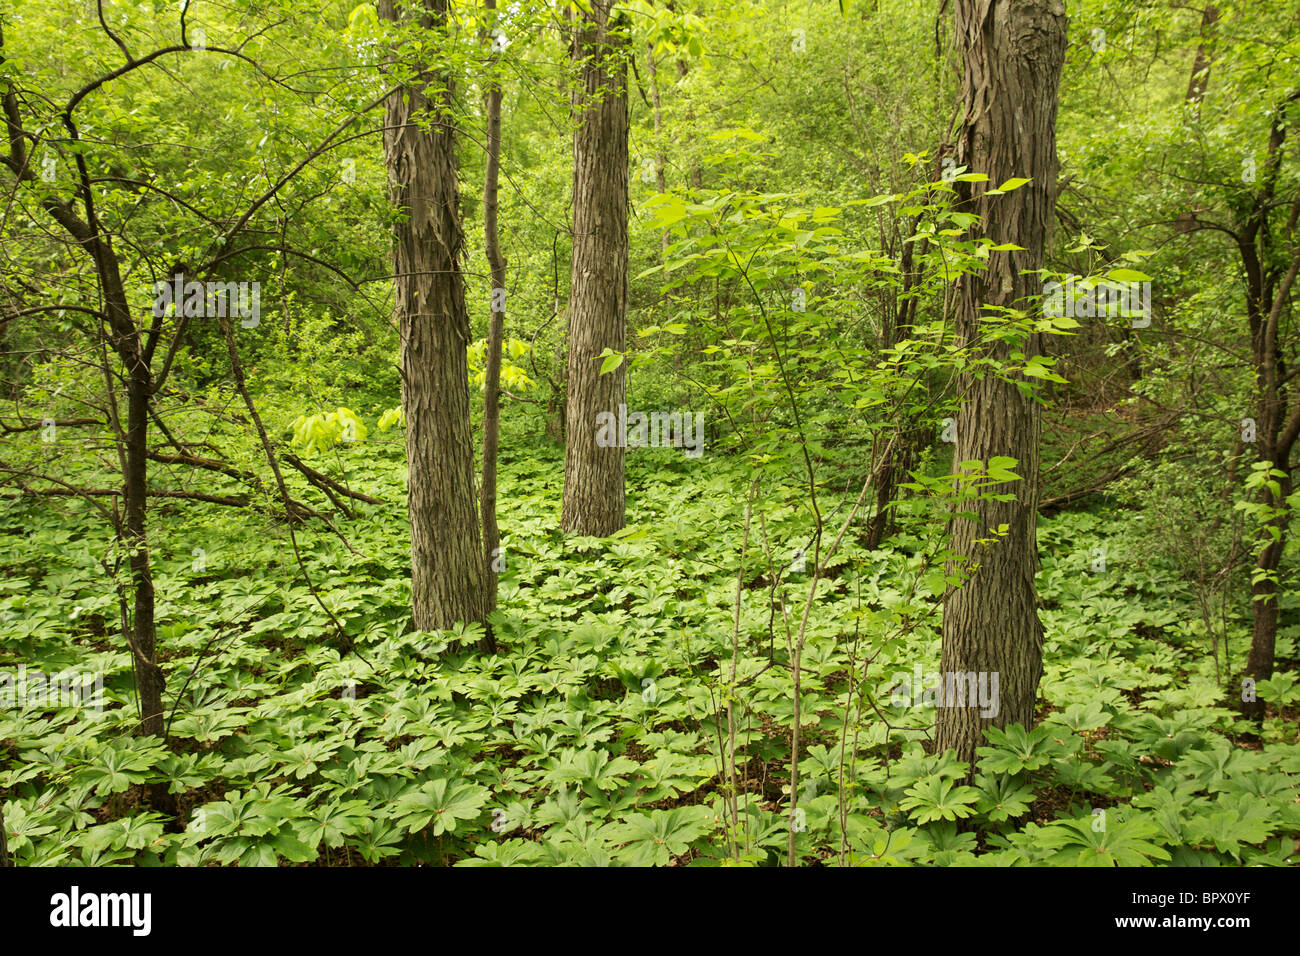 Hickory forest with May apples covering forest floor in spring. Moraine Hills State Park, Illinois - Stock Image